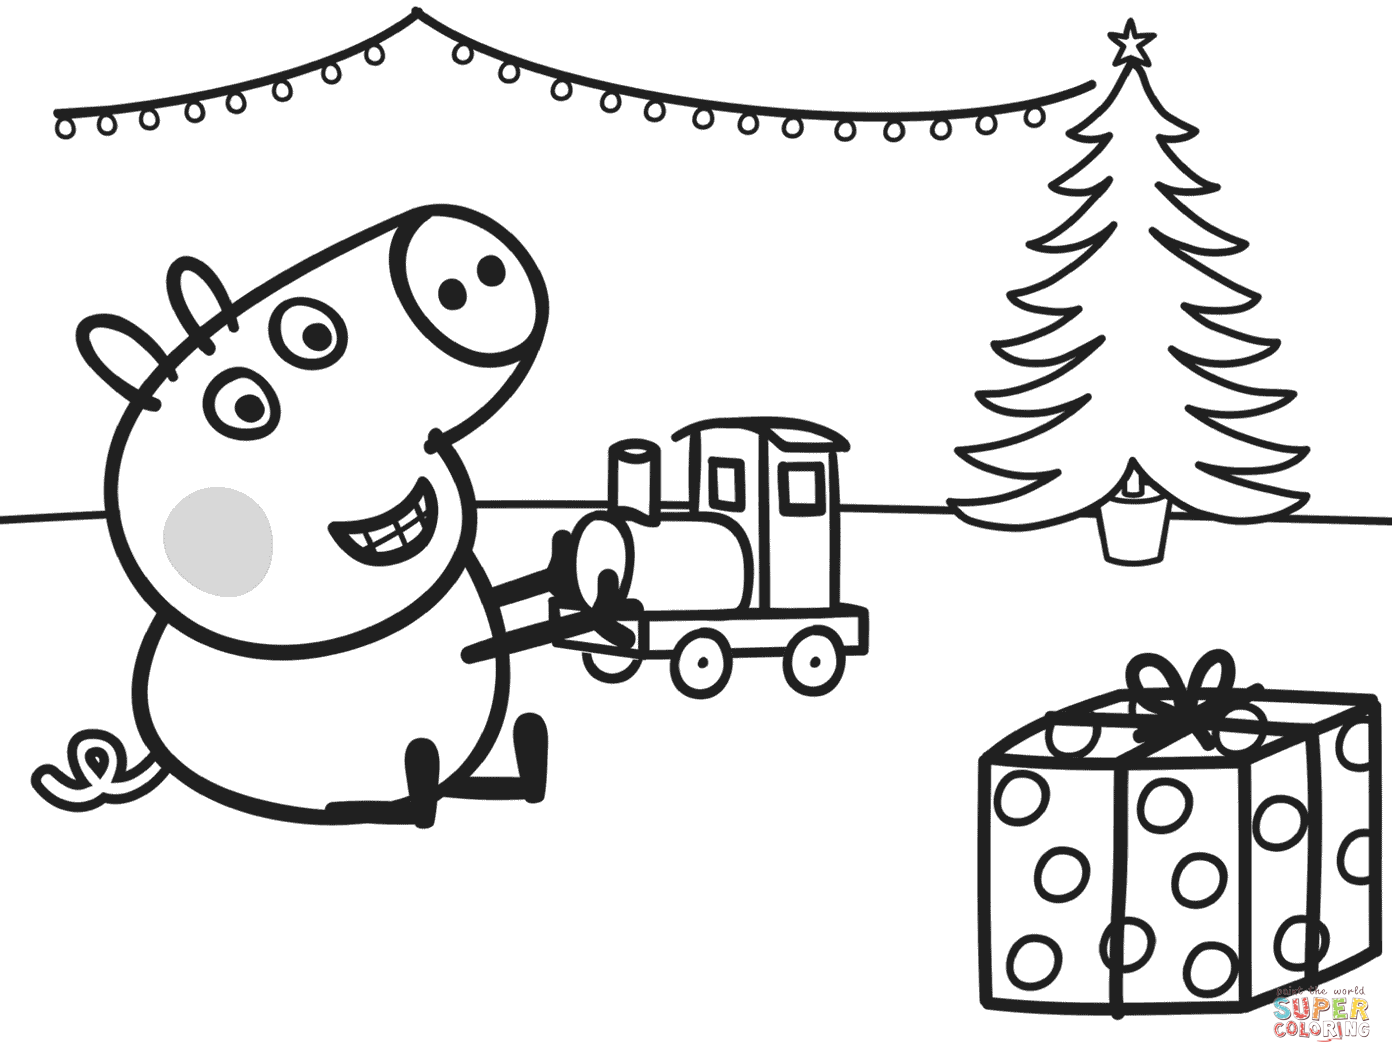 1392x1063 George Plays With Xmas Train Coloring Page Free Printable